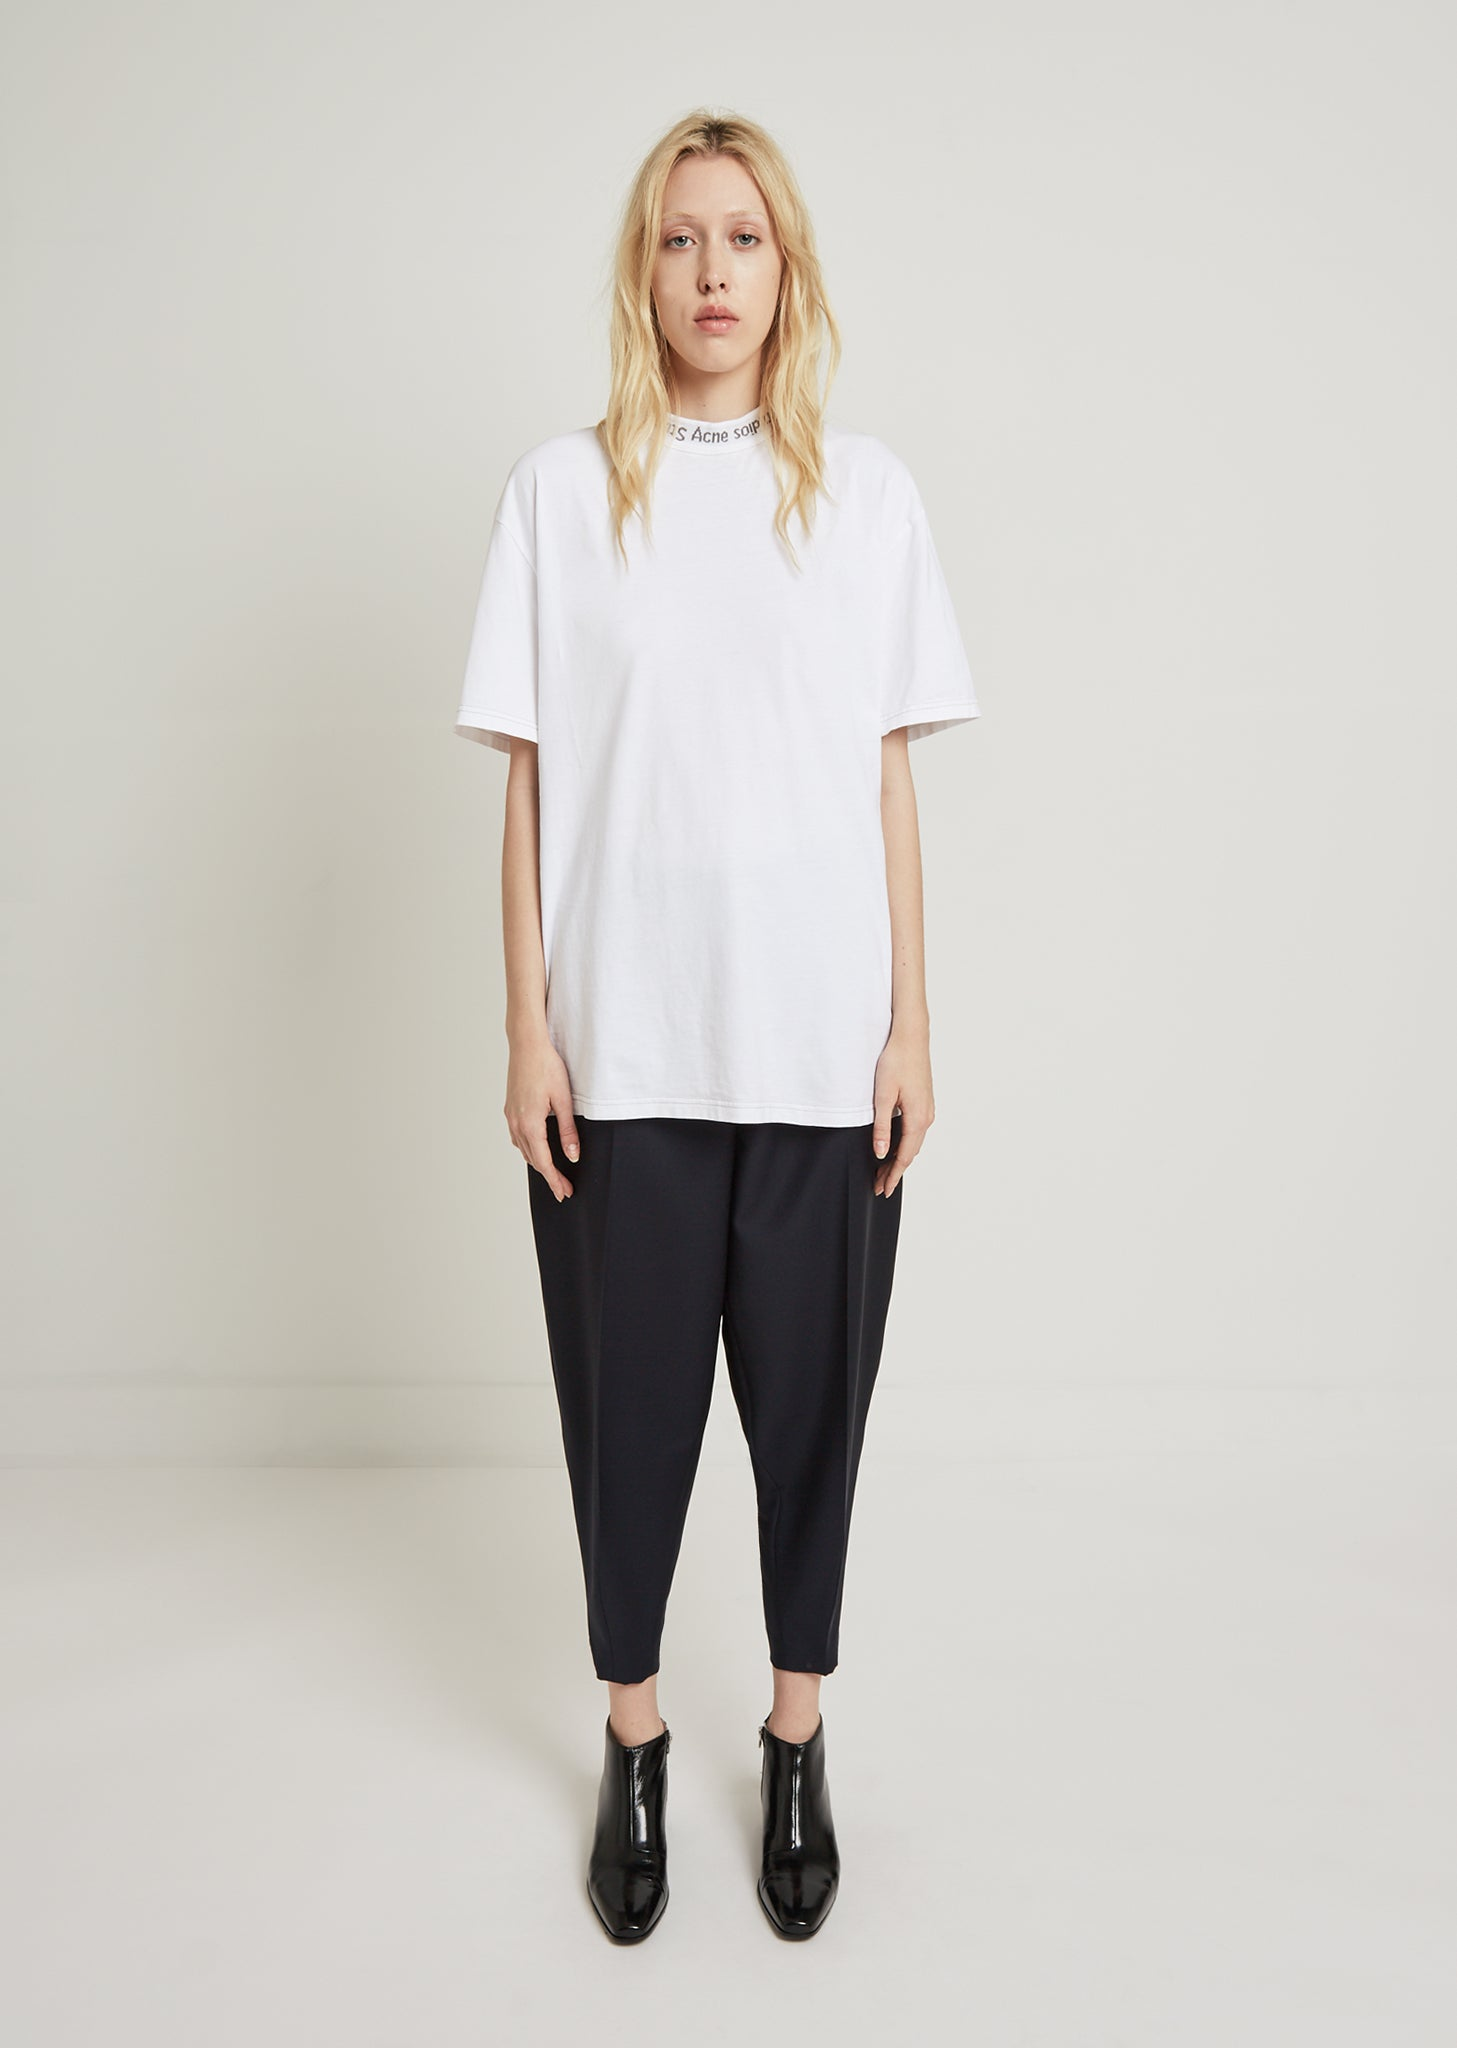 6718591a70aa Gojina Dyed Neck Logo Tee by Acne Studios- La Garçonne